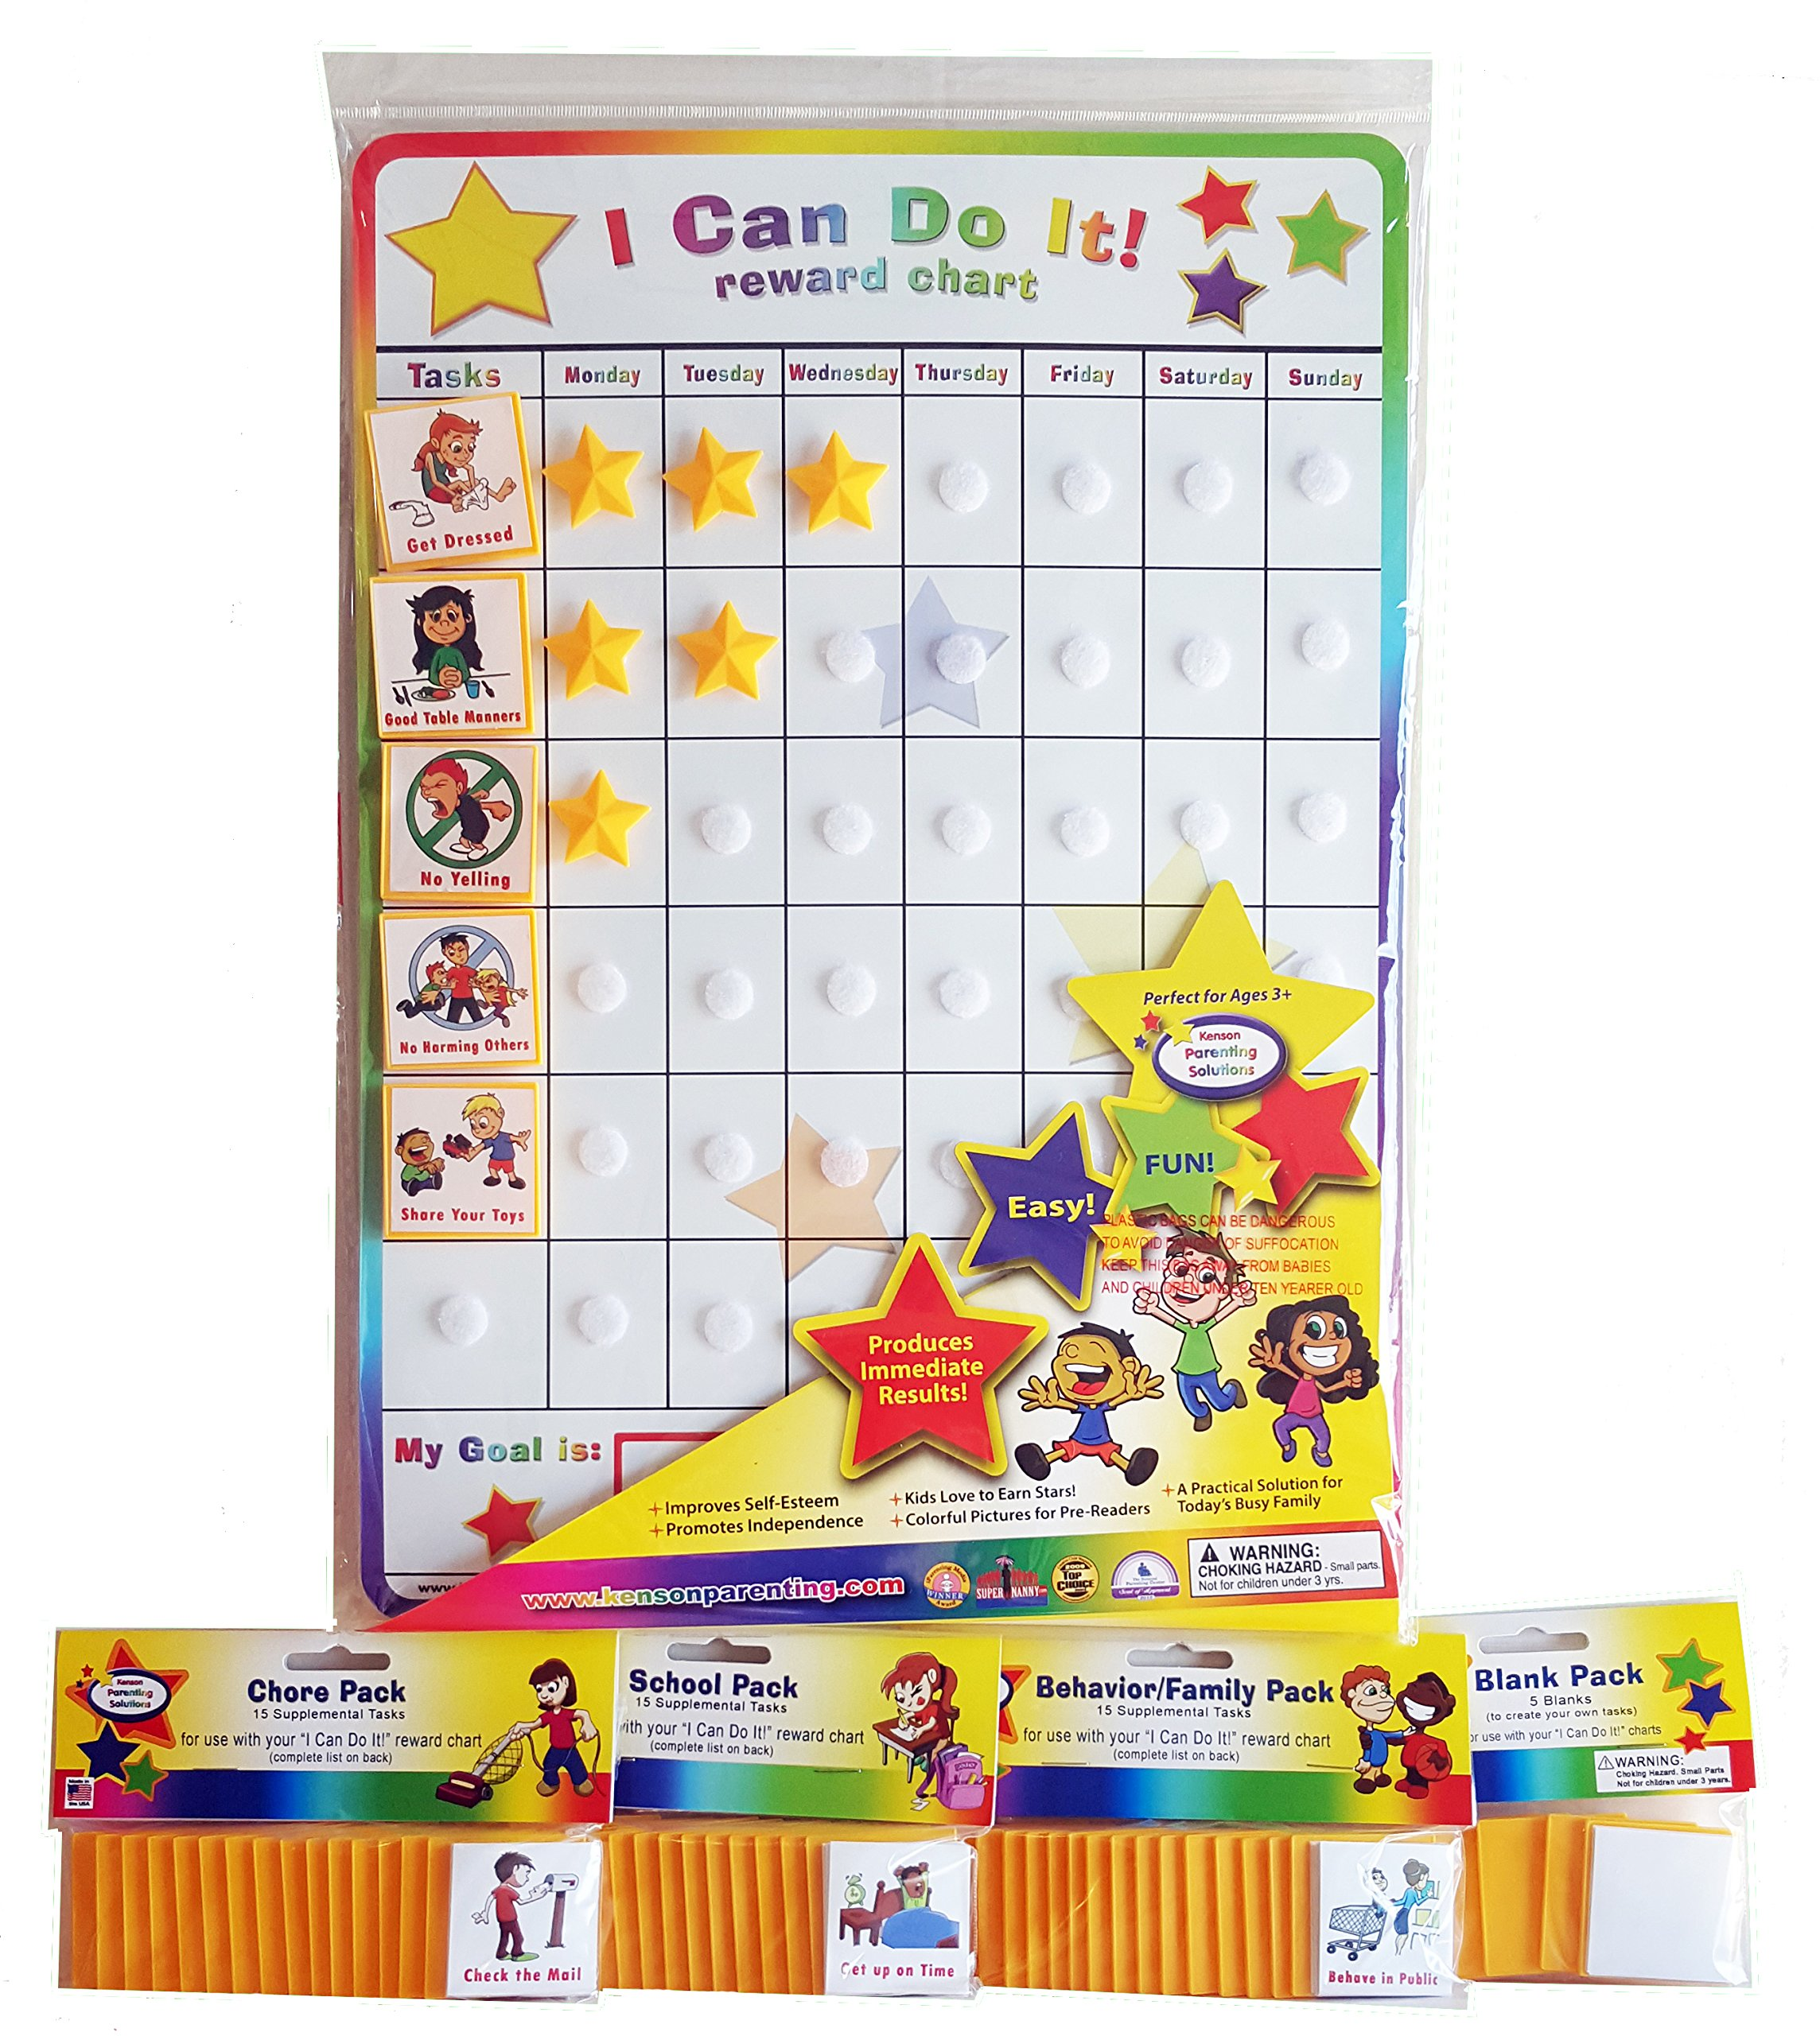 I Can Do It! reward chart supplemental pack bundle, behavior, chore, school and blanks.